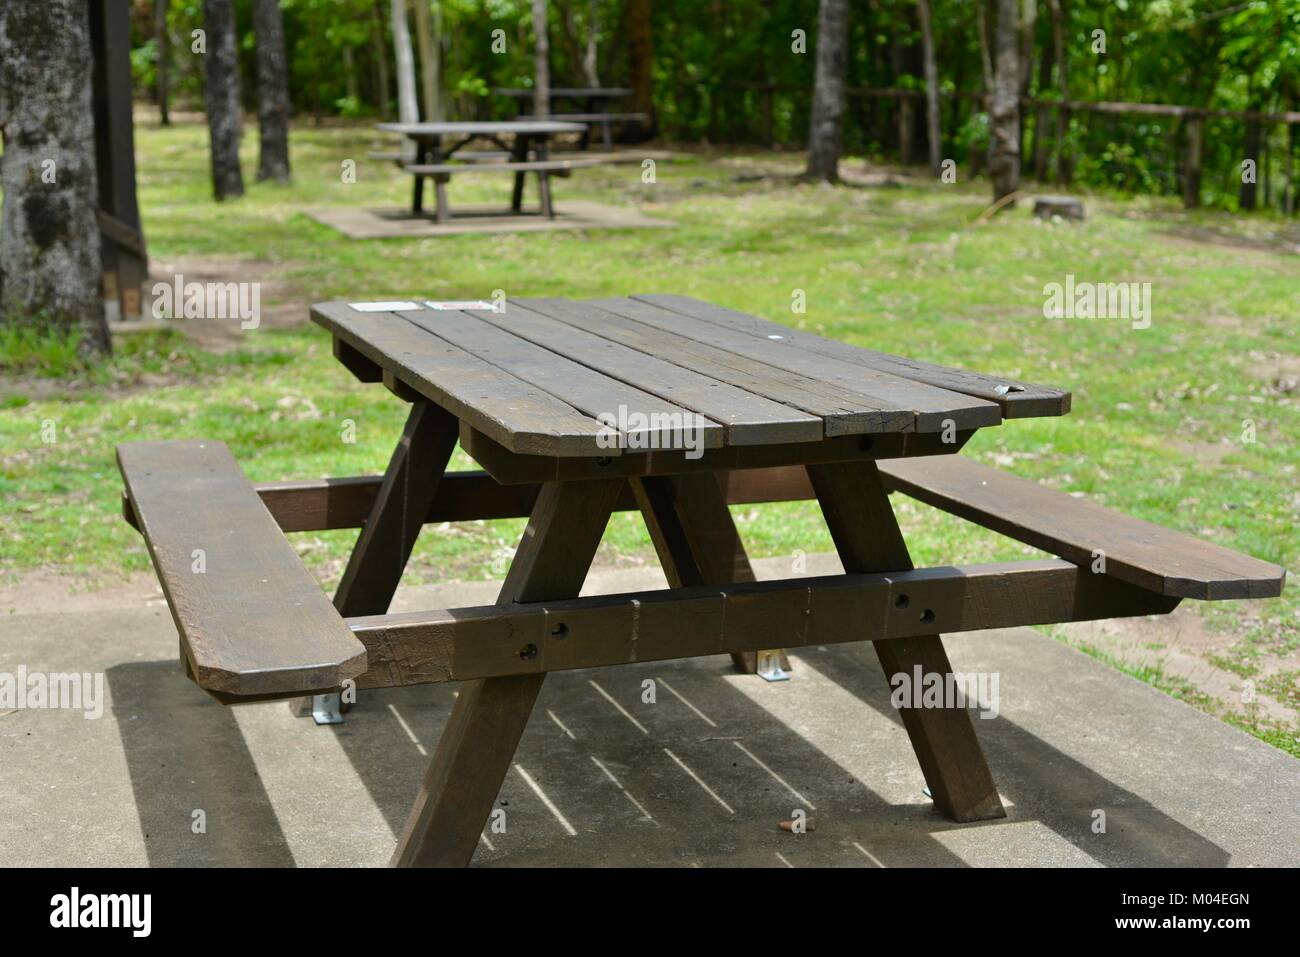 Peachy Brown Wood Public Picnic Table And Chairs Alternatively Gmtry Best Dining Table And Chair Ideas Images Gmtryco